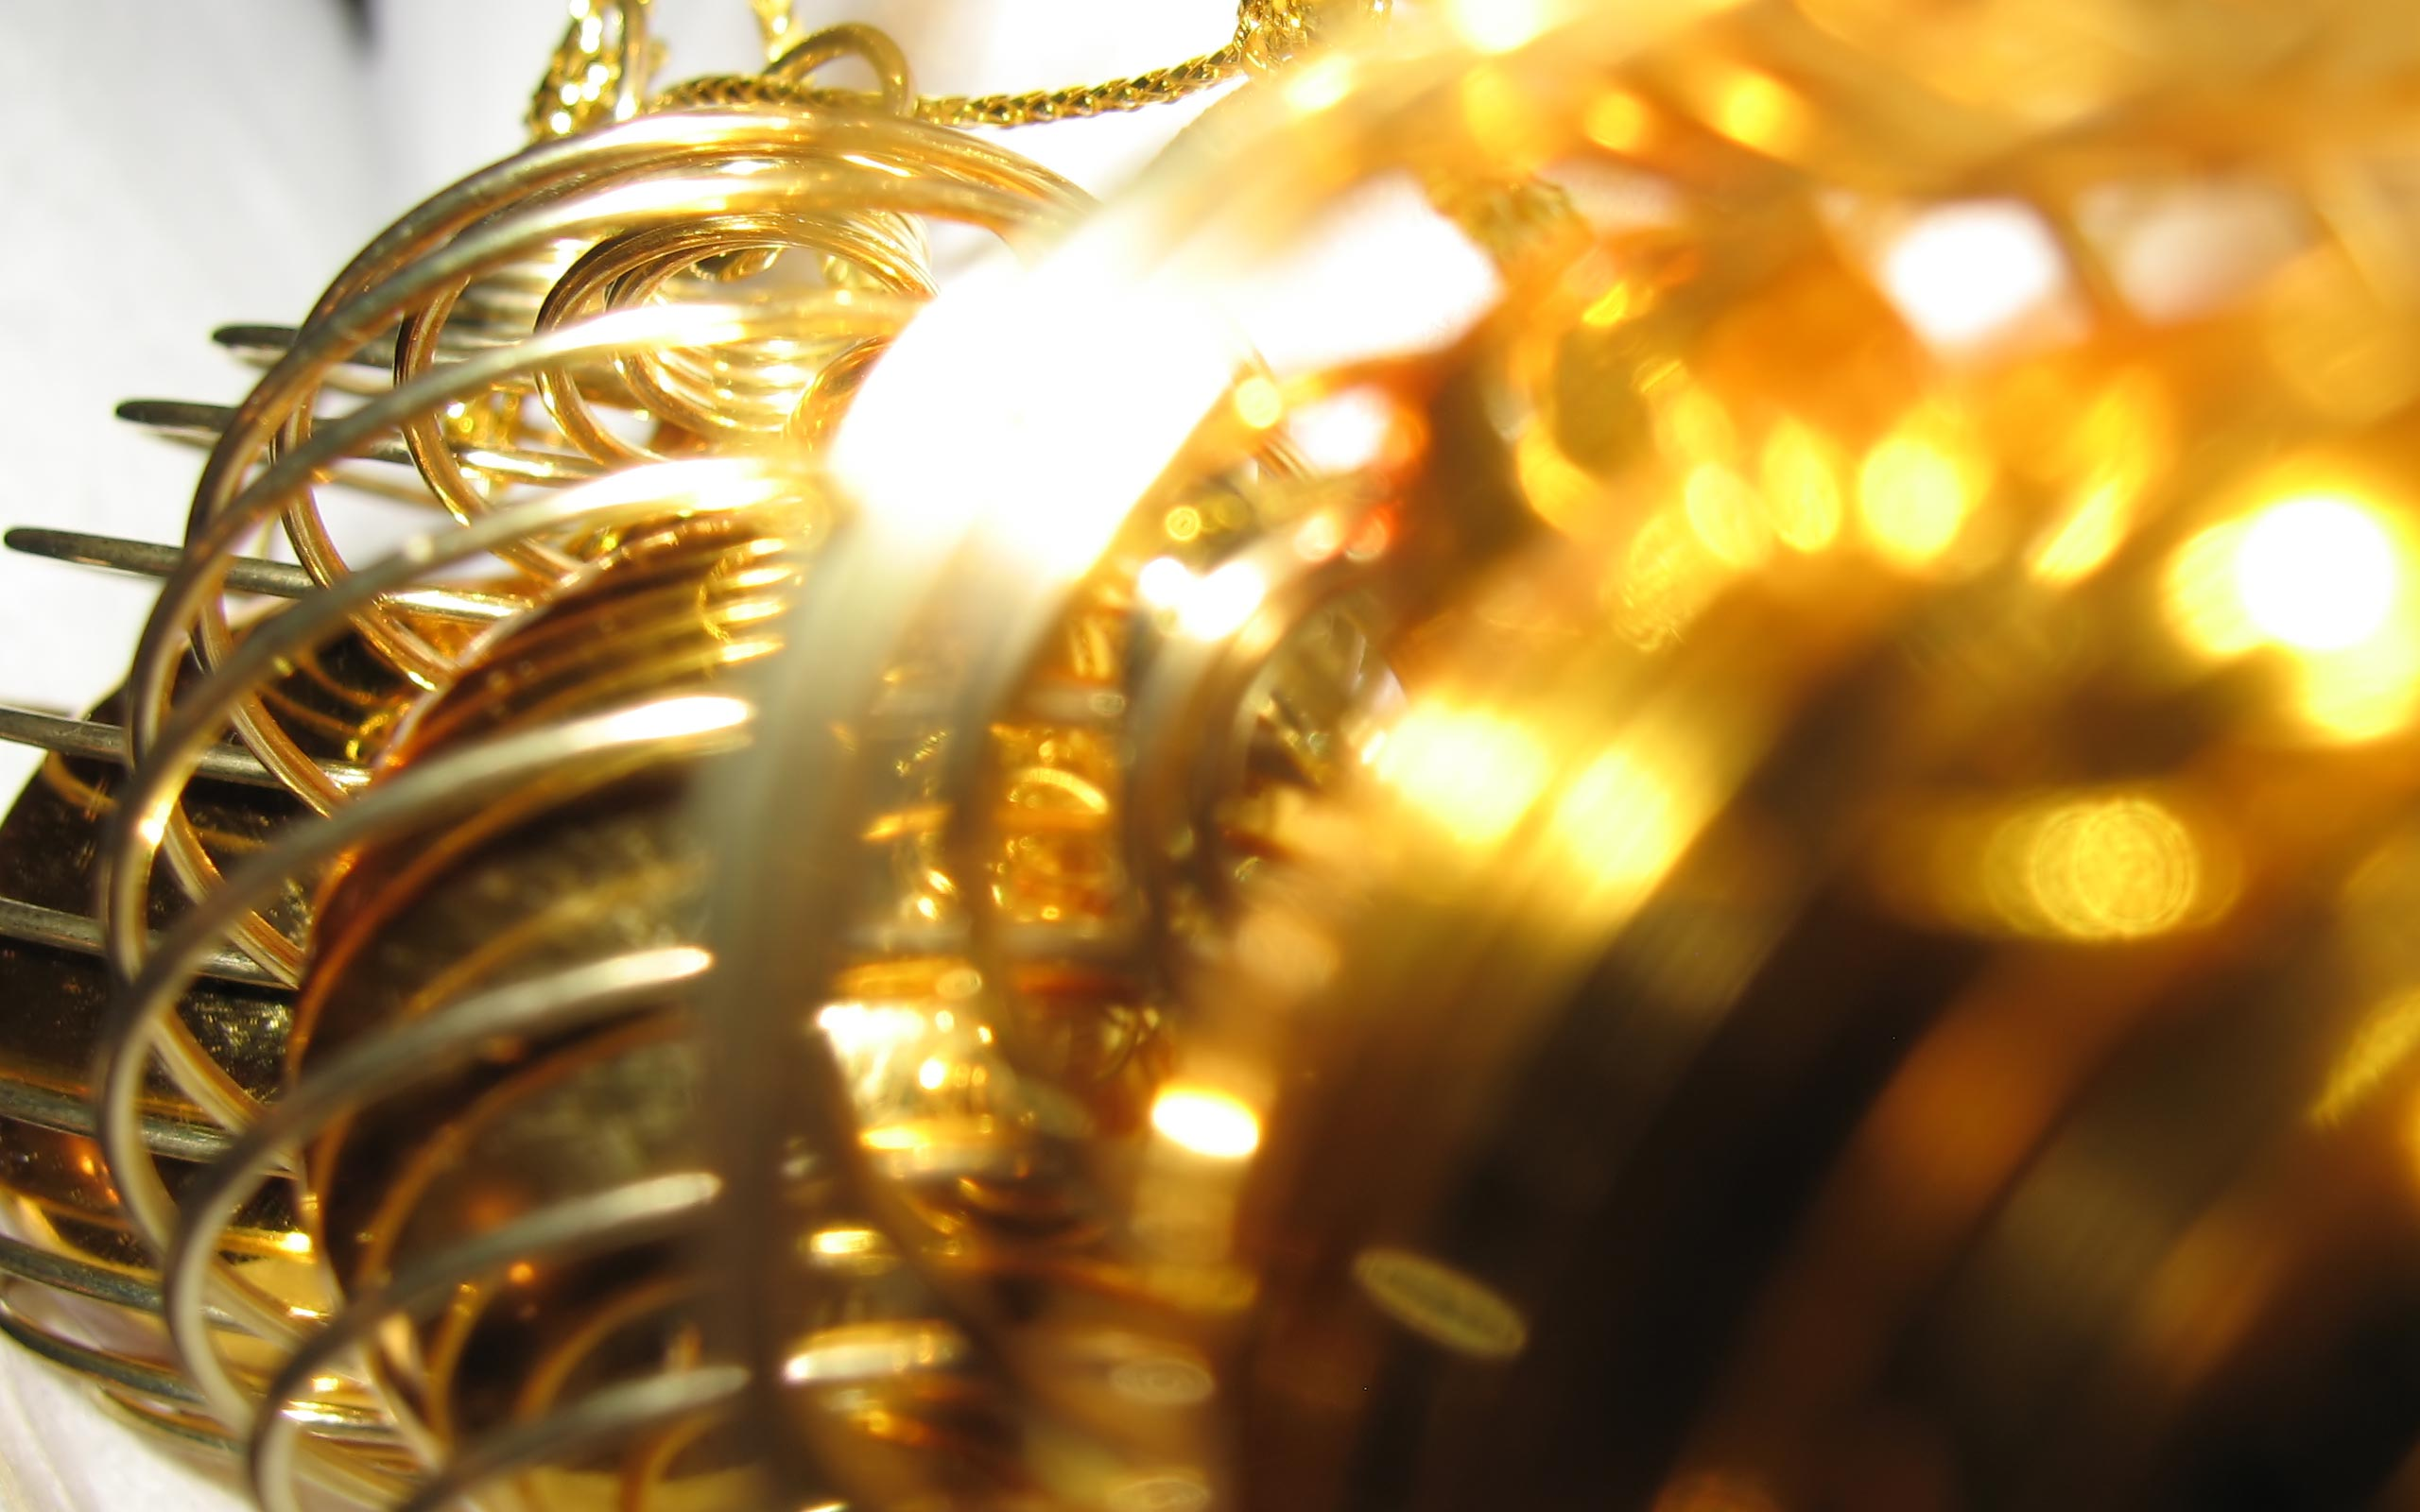 Abstract Gold Wallpaper 2560x1600 Abstract Gold 2560x1600